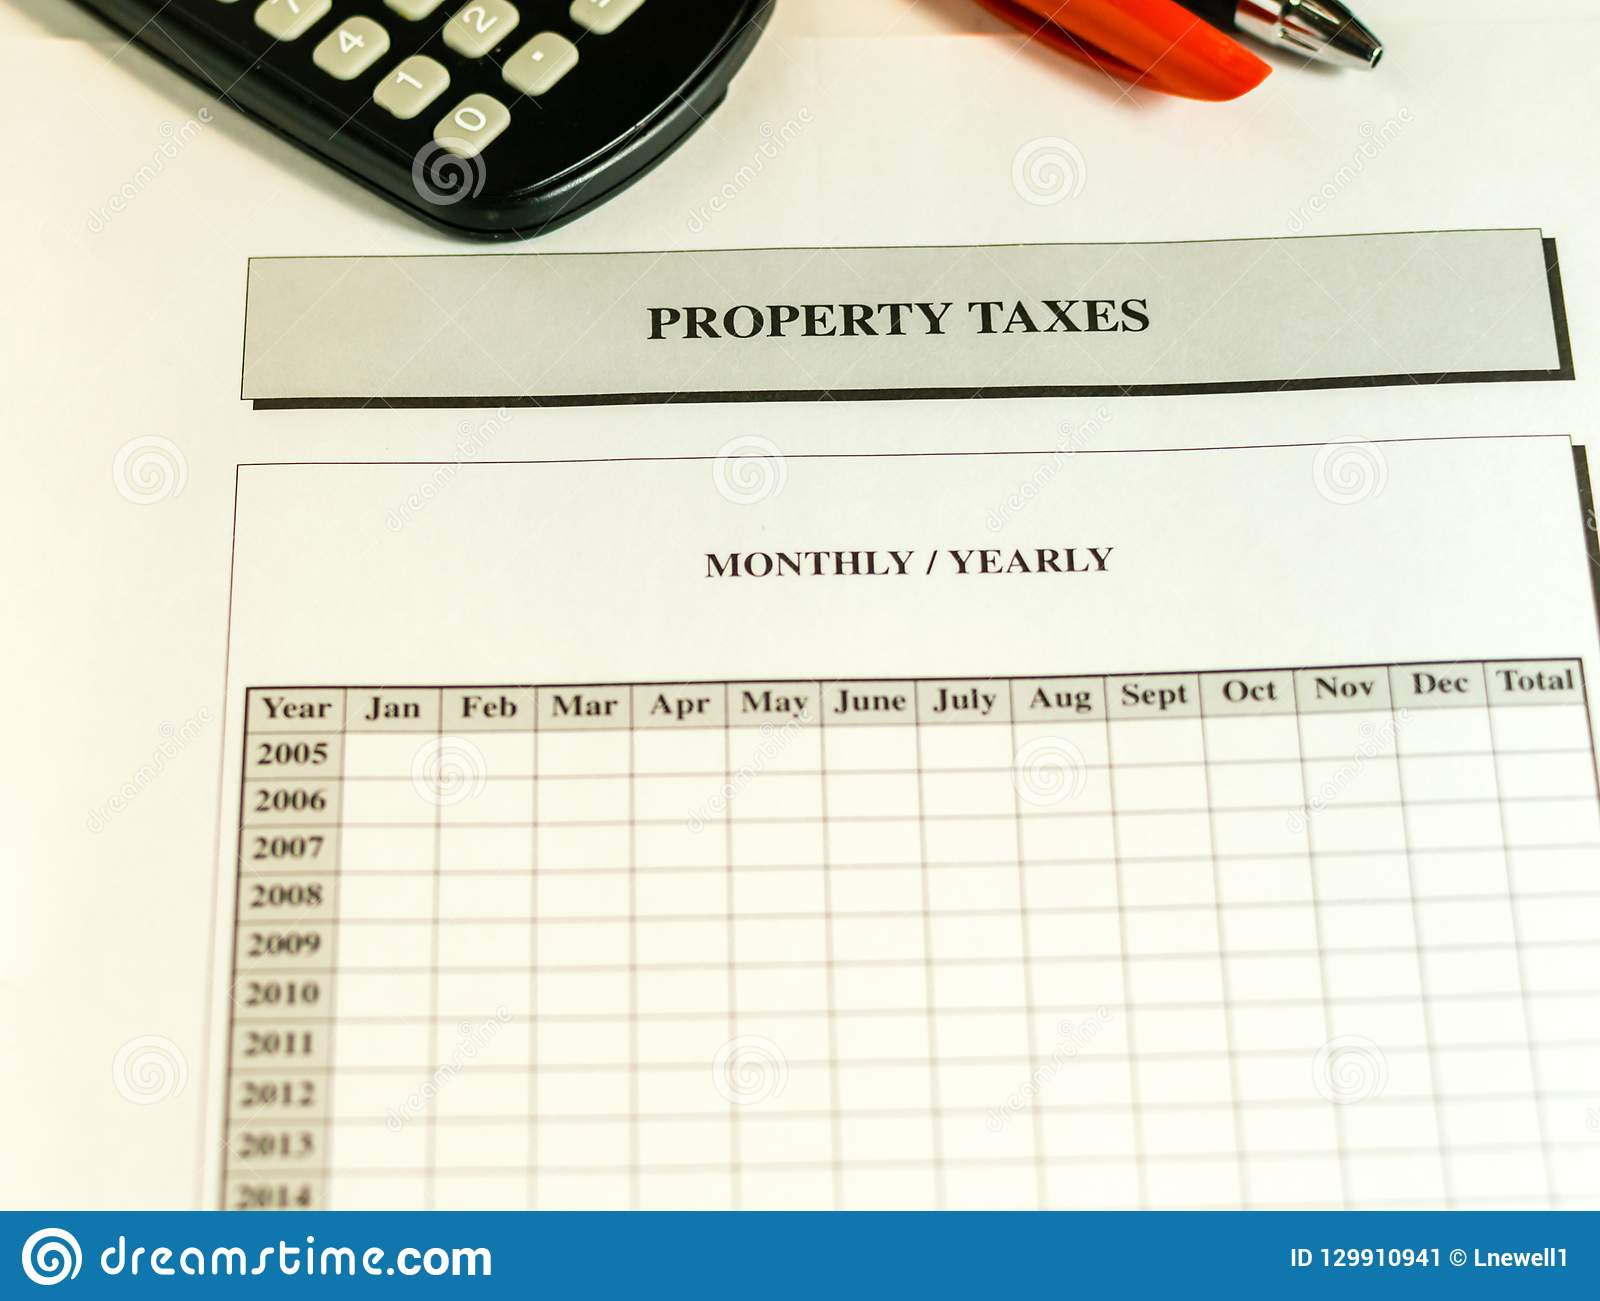 Property Taxes Monthly Yearly Worksheet Stock Image